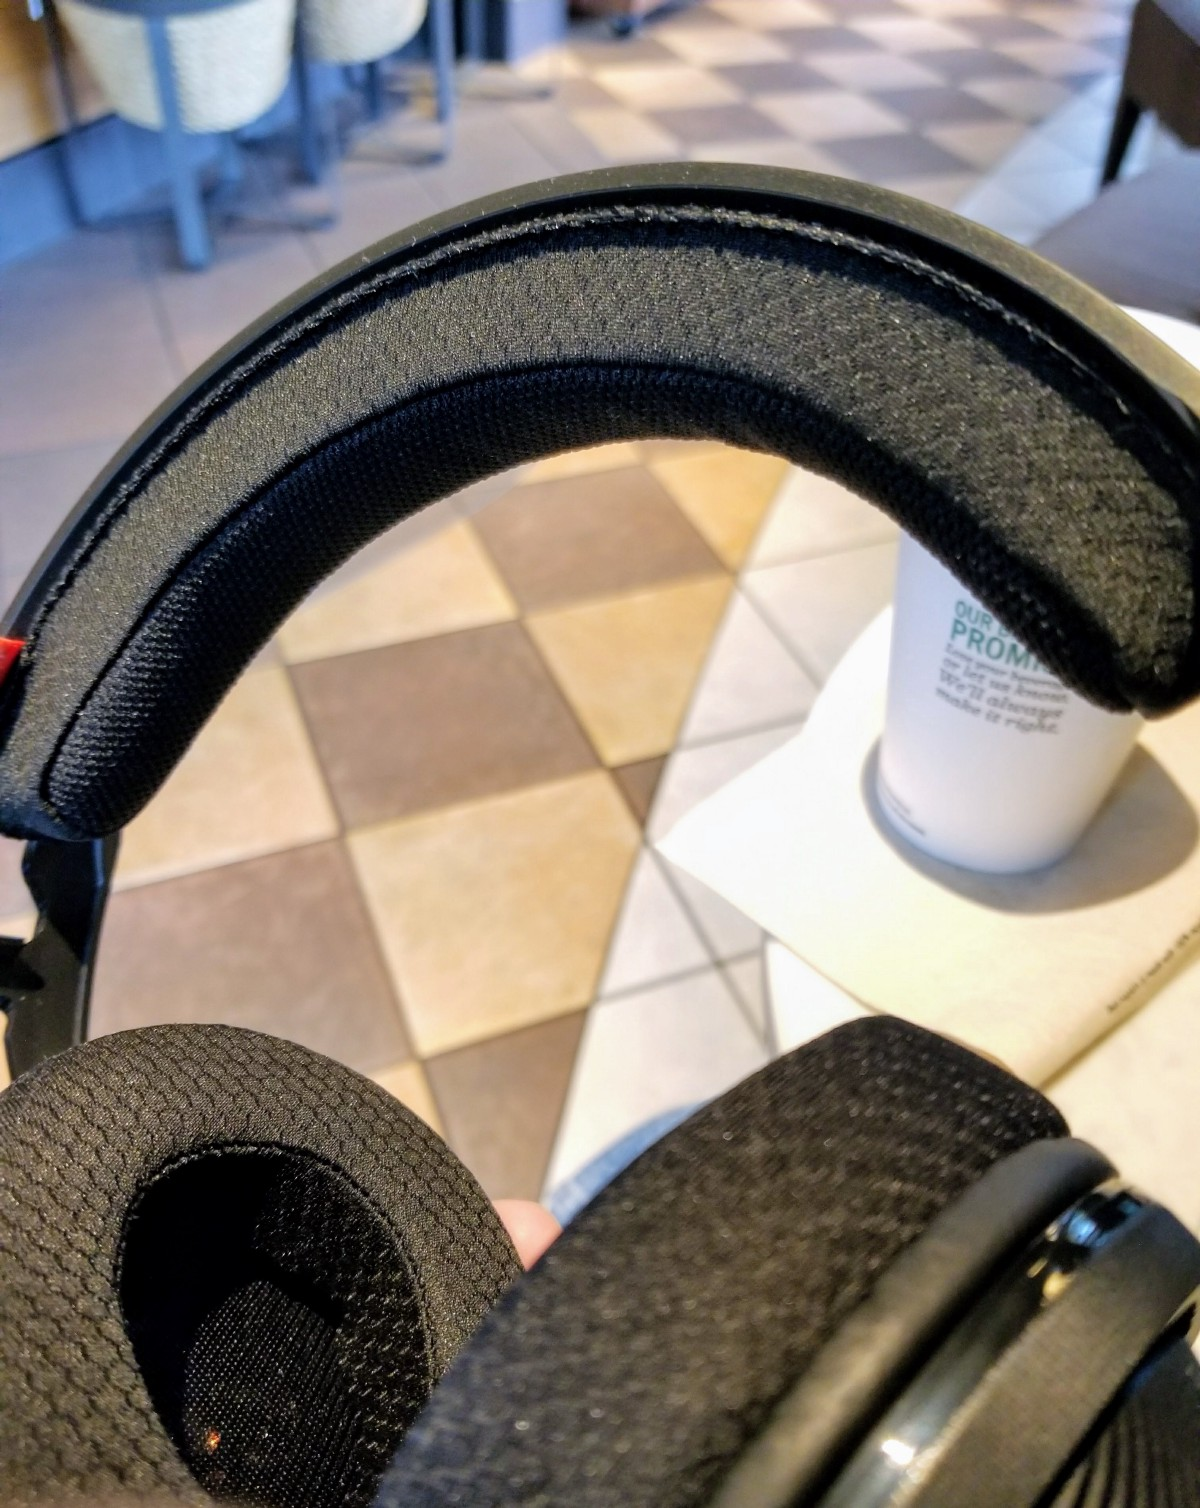 Plantronics RIG 400HX Review: The Good, The Bad, and A New